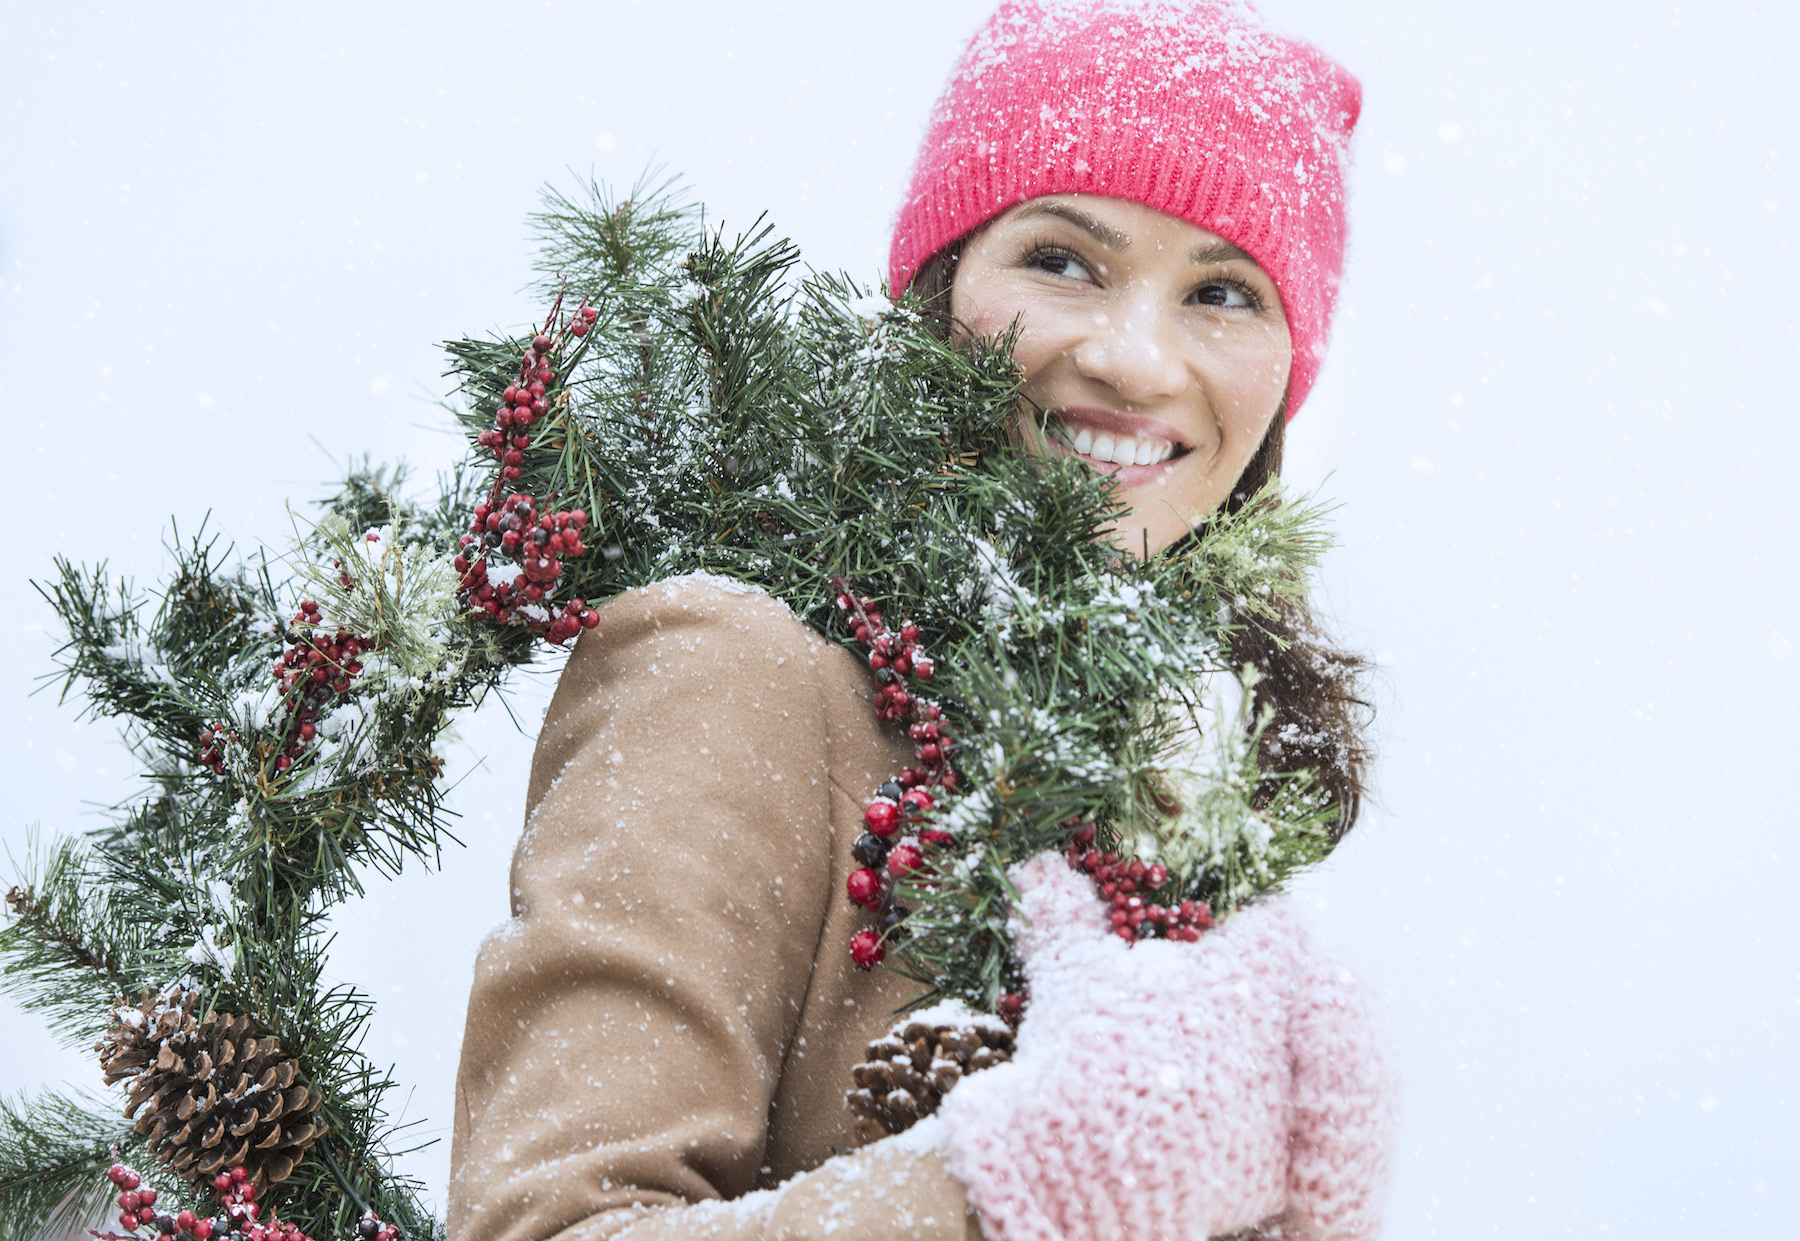 Woman carrying wreath in snow